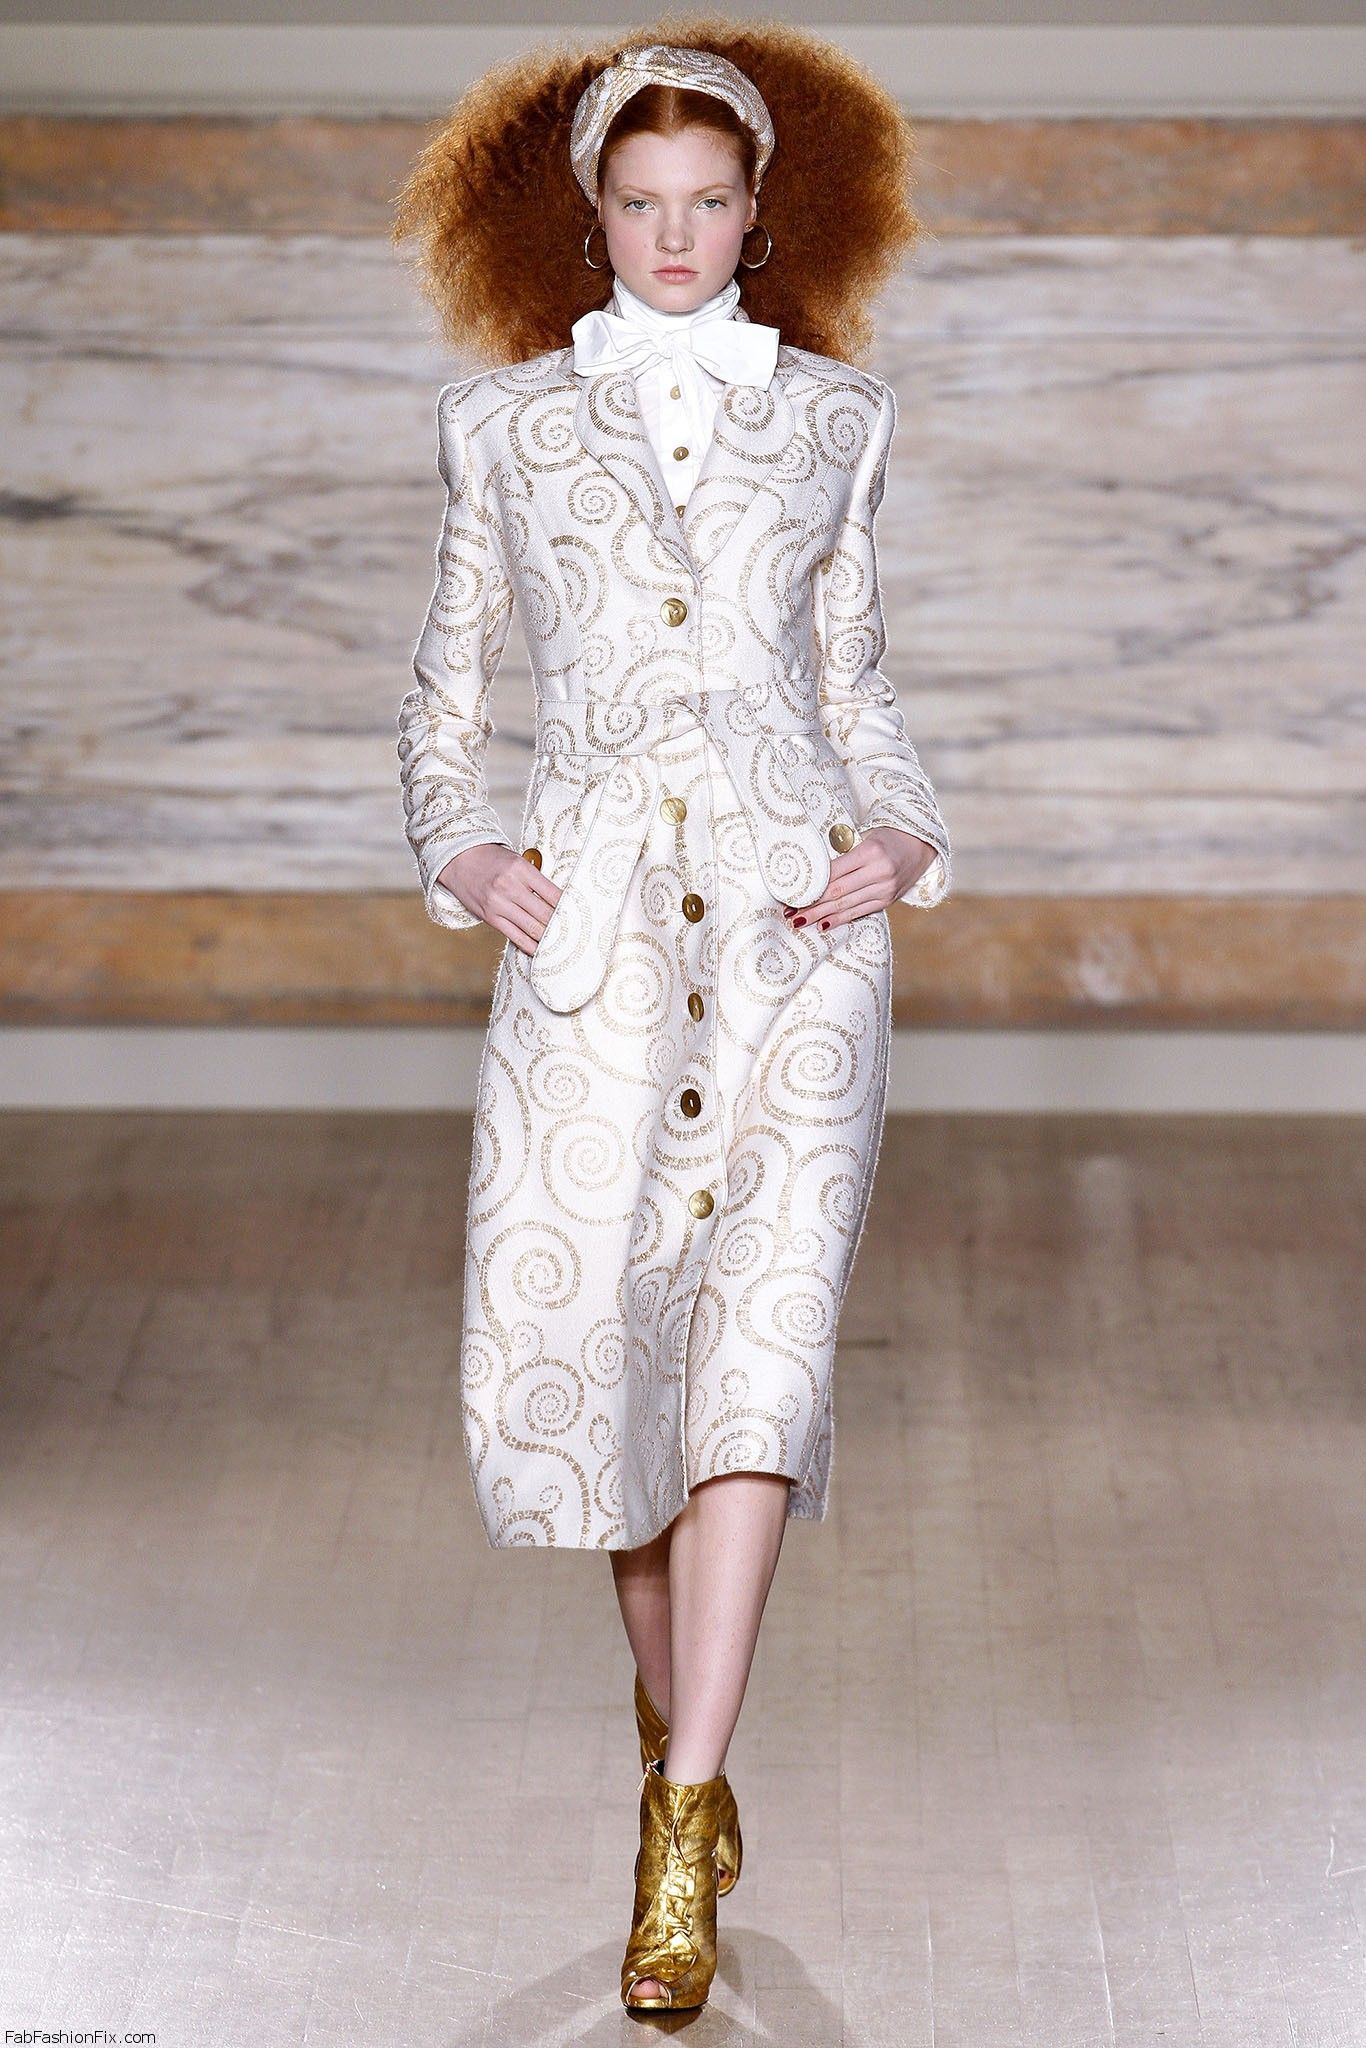 L'Wren Scott Fall/Winter 2013 Collection